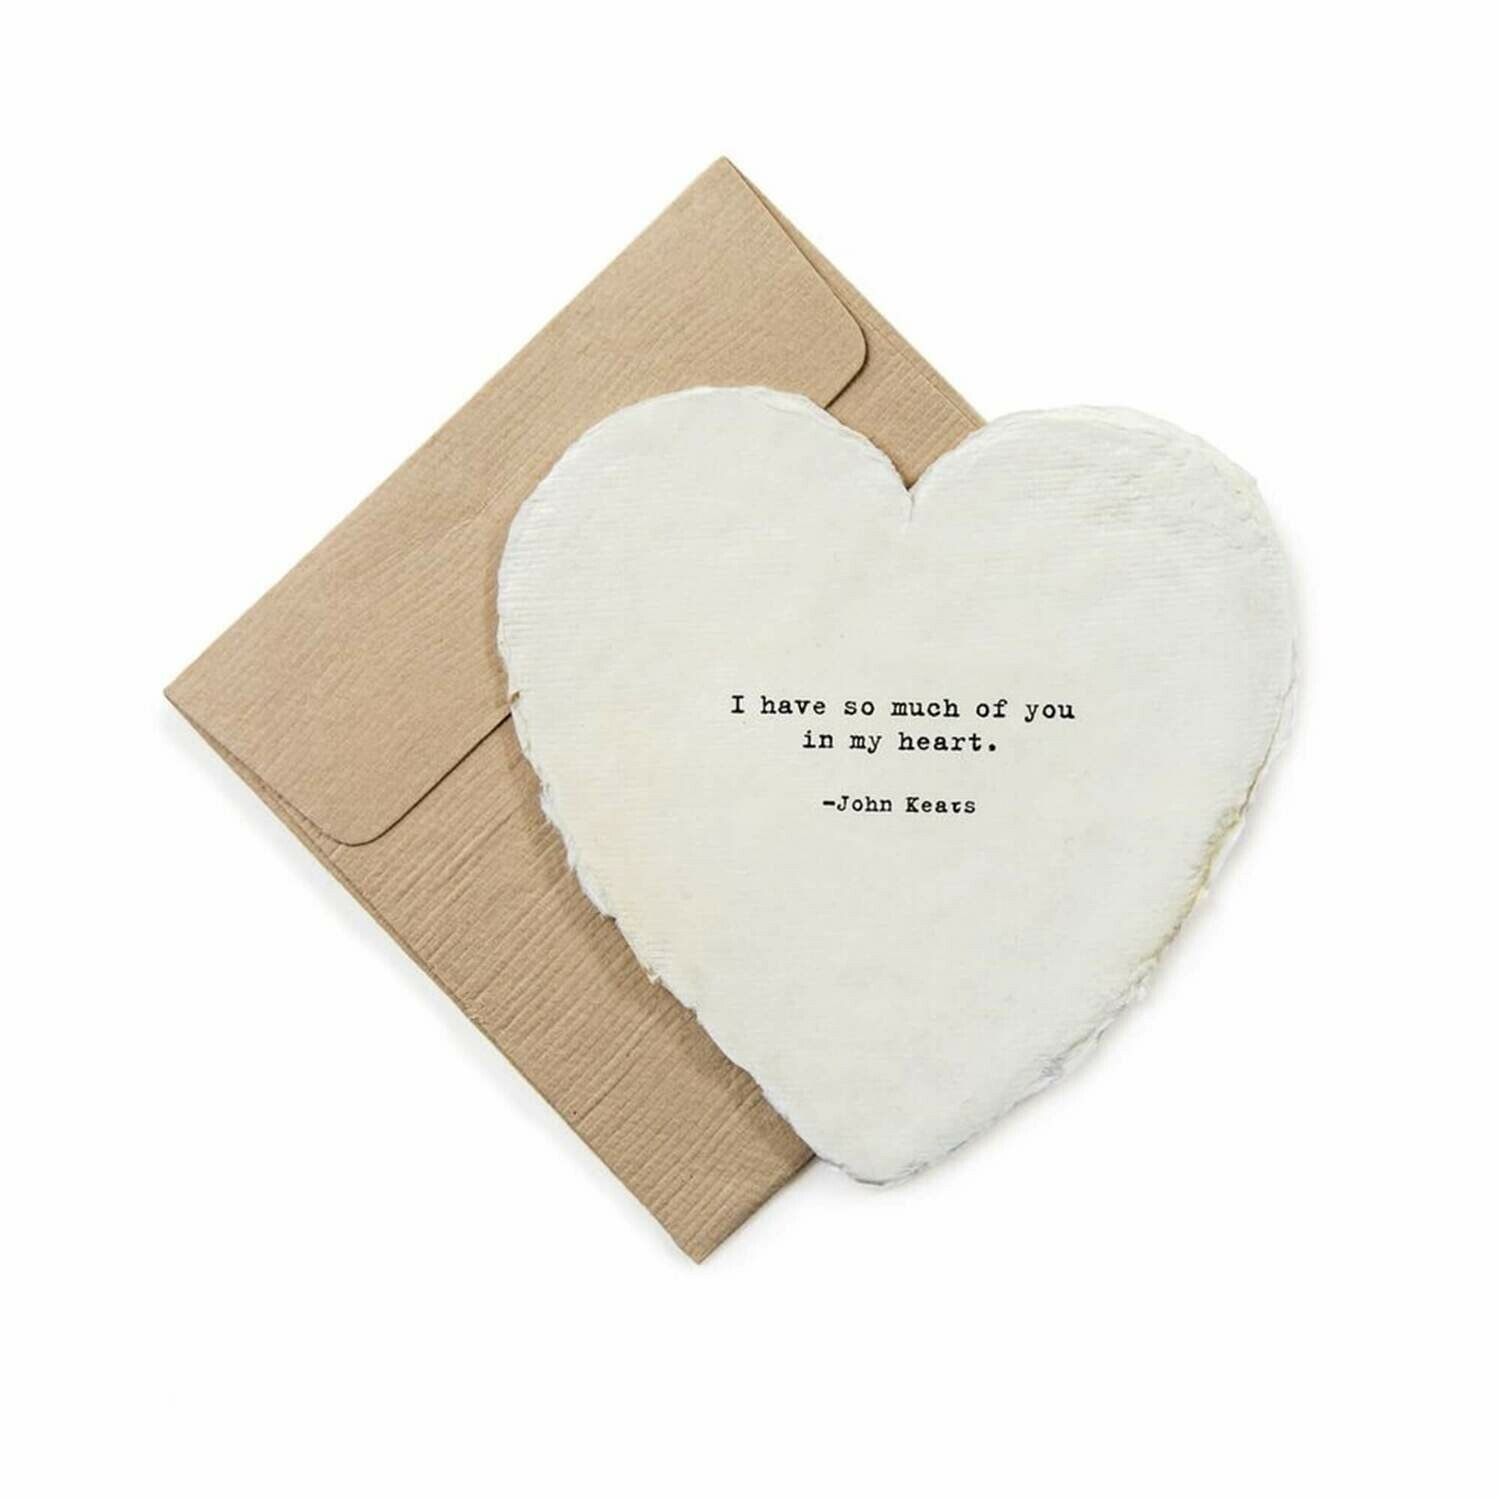 Mini Heart Shaped Card & Envelope-I have so much